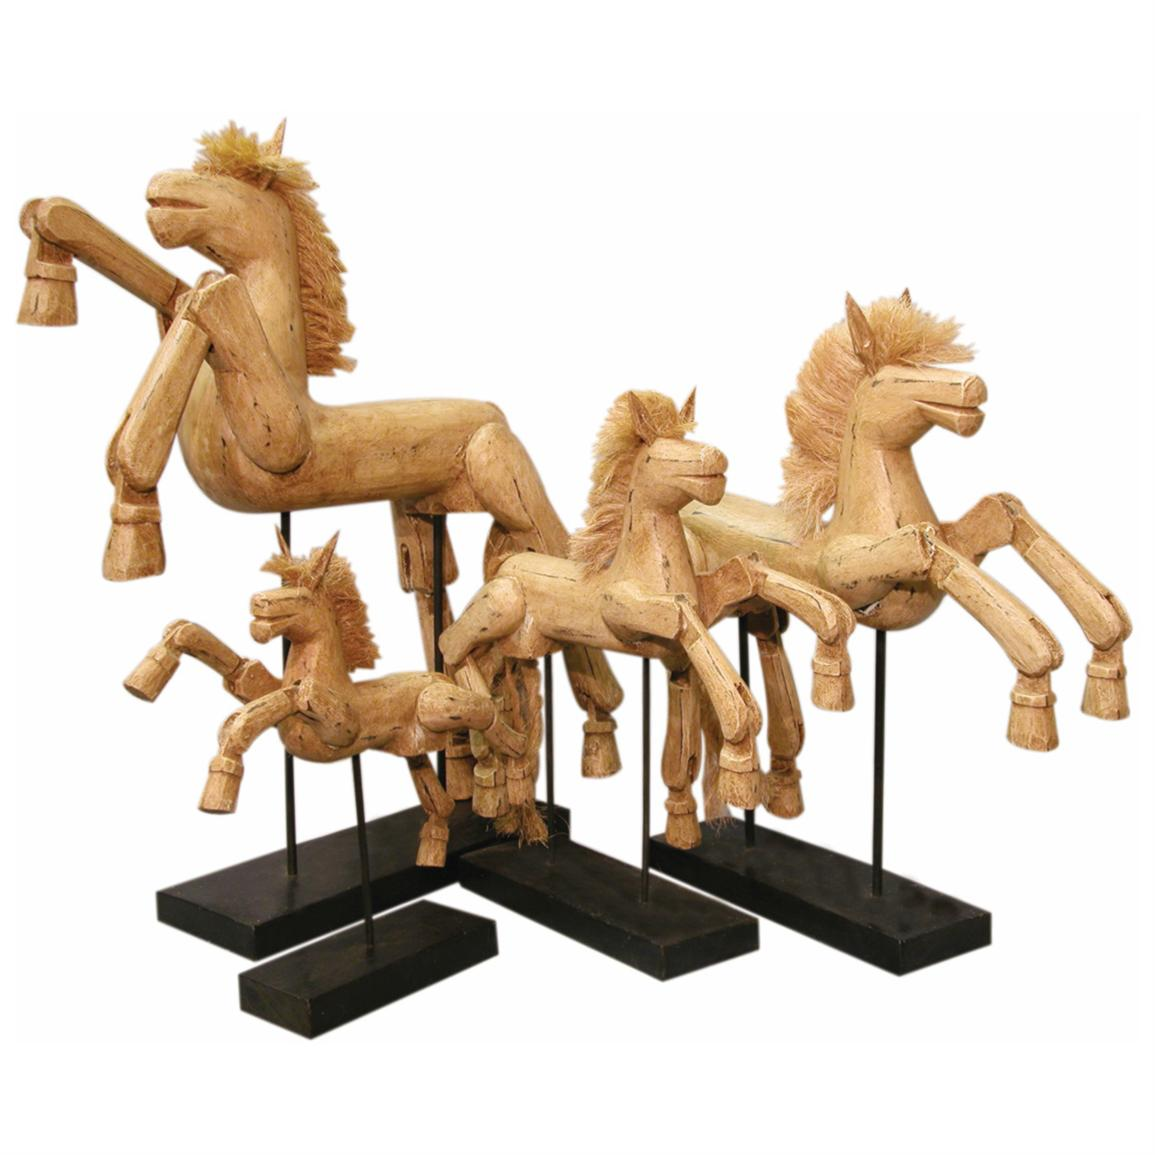 Groovy Stuff® Large Hinged Horse on Stand